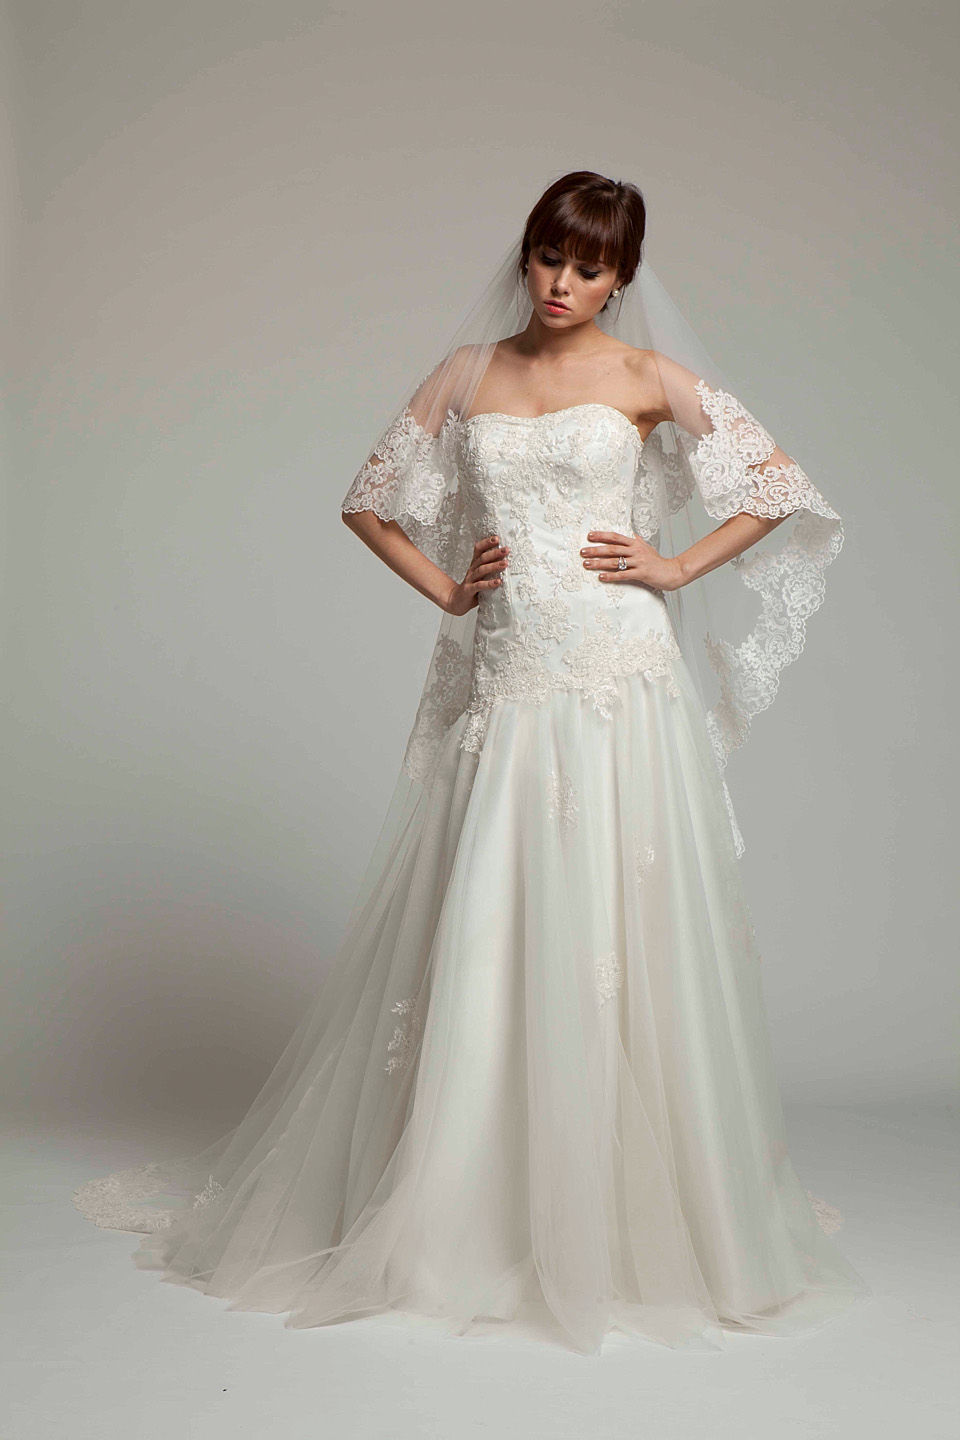 Melanie Potro:  Simply Stylish Gowns With Exquisite Details